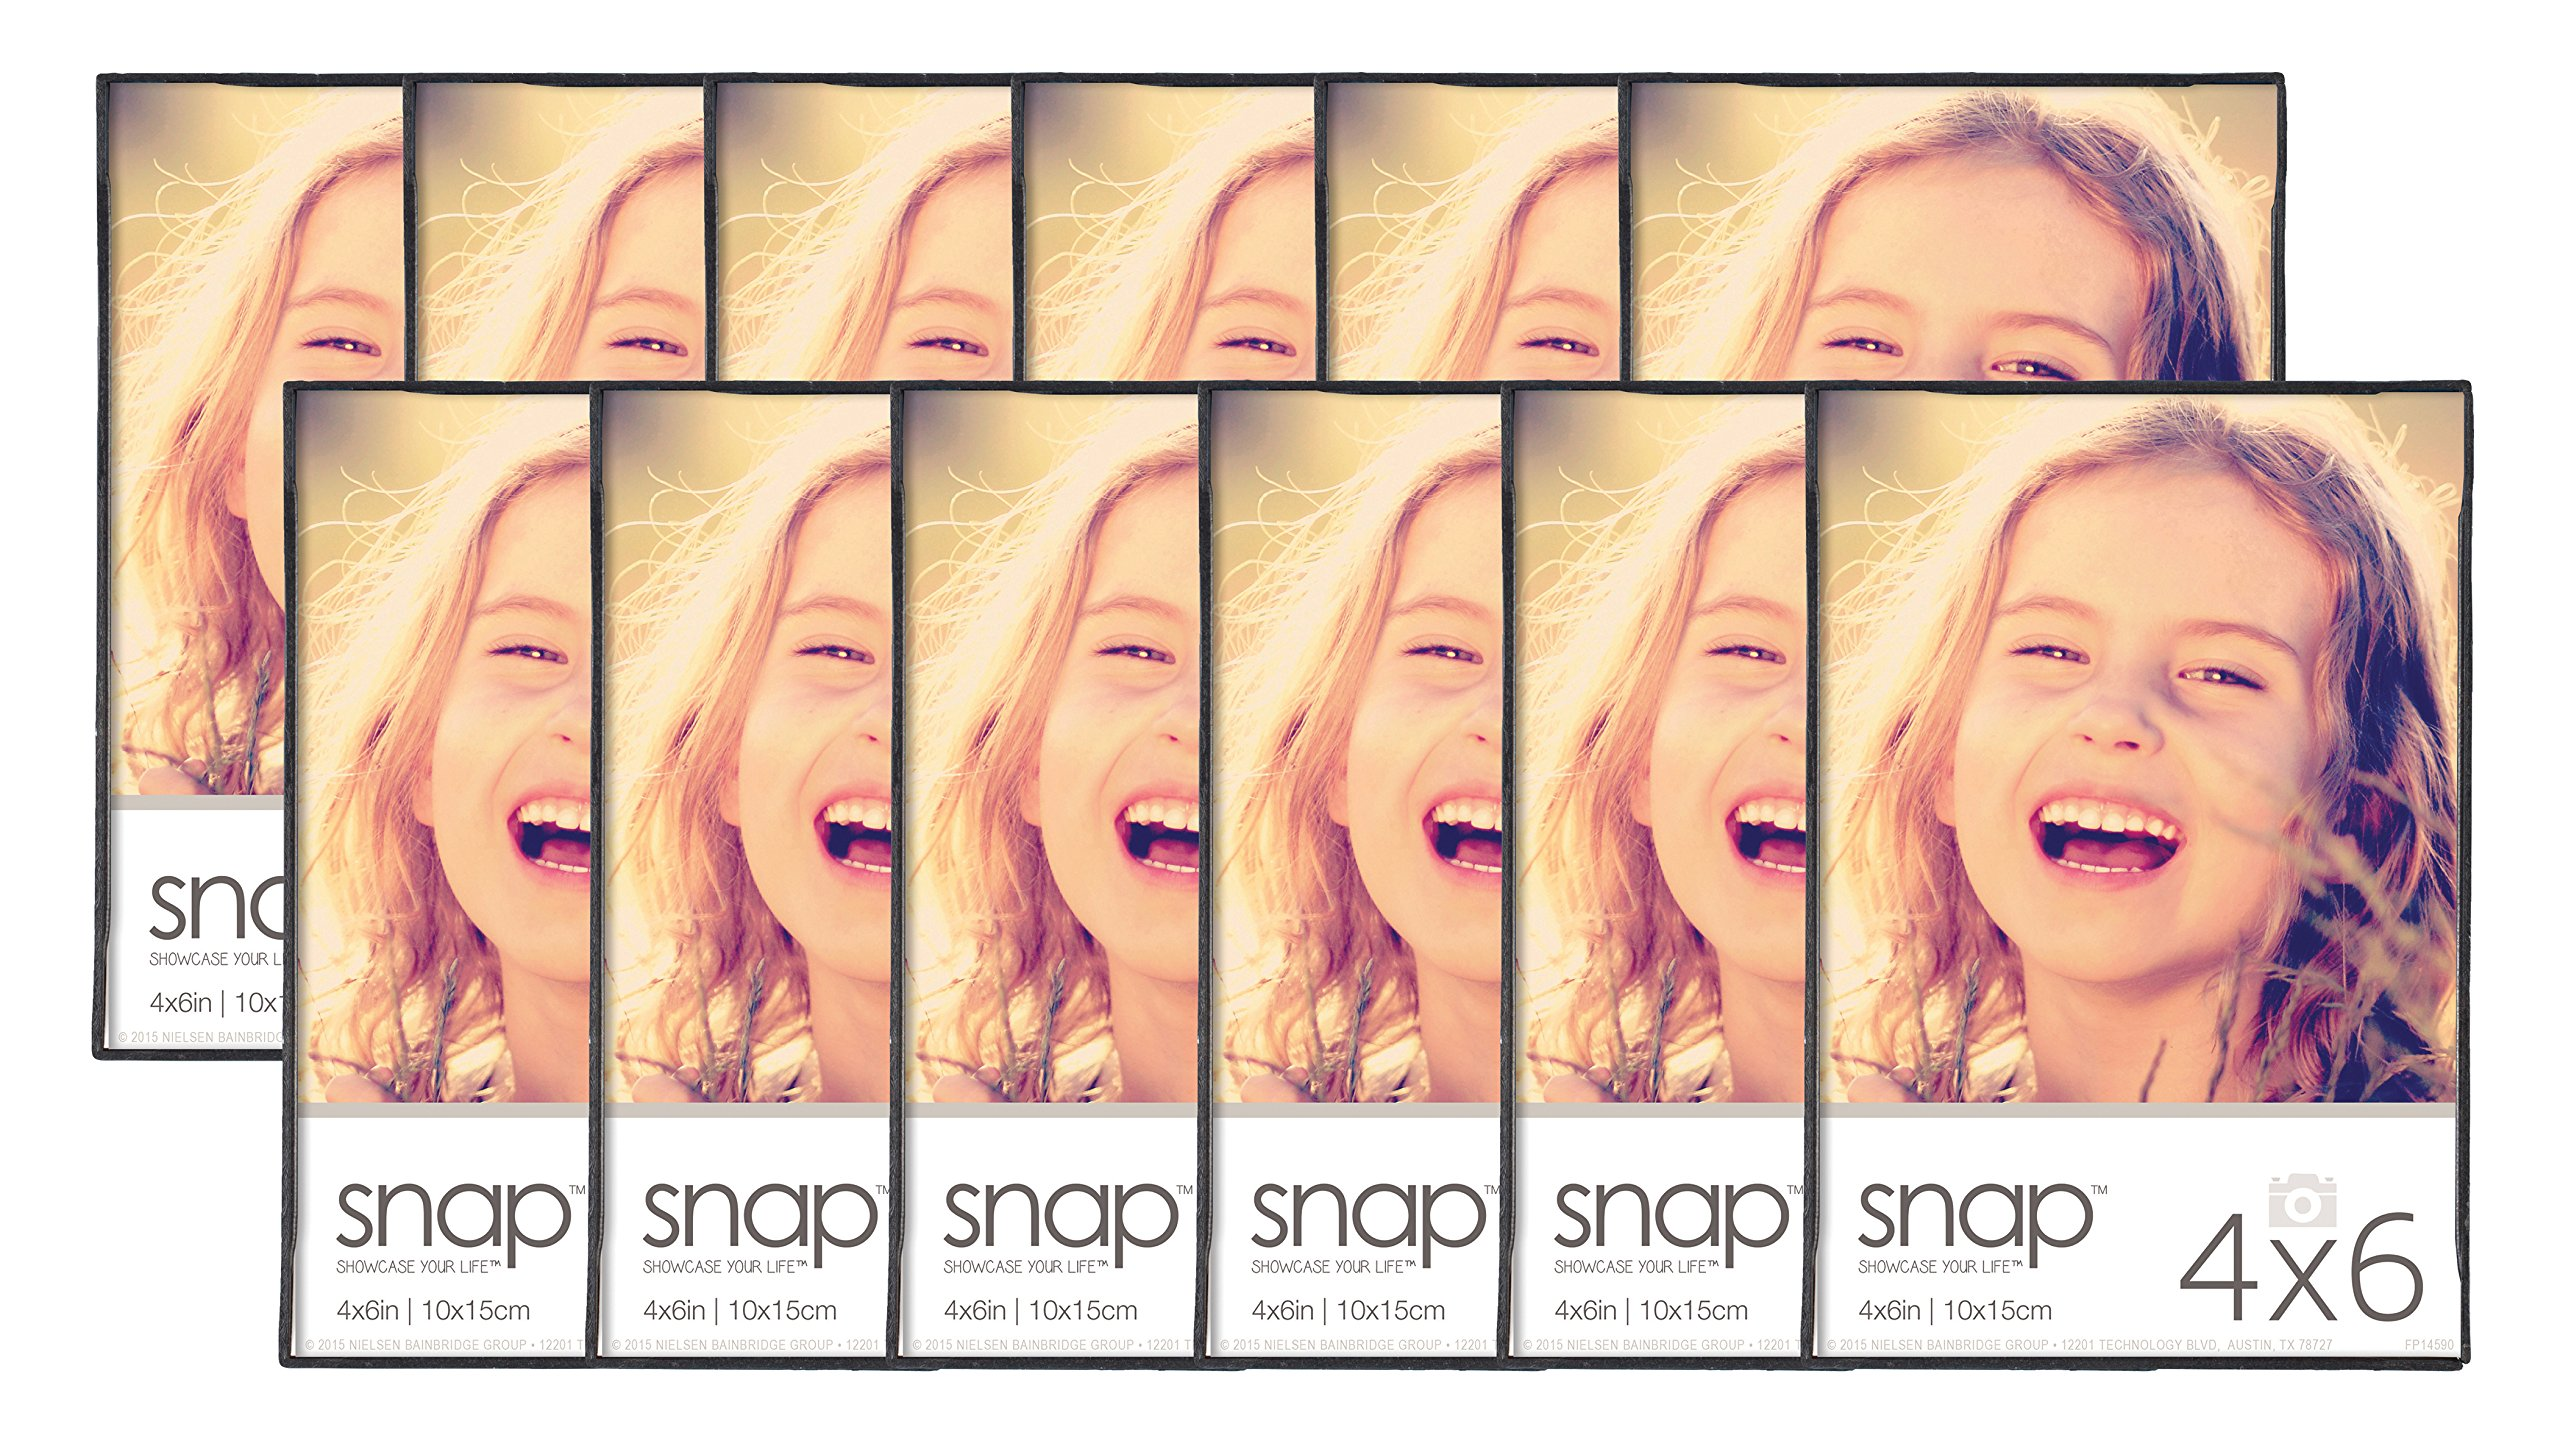 Snap 4x6 Front Loading Narrow Photo Frame, Set of 12, For Wall or Tabletop Display by Snap